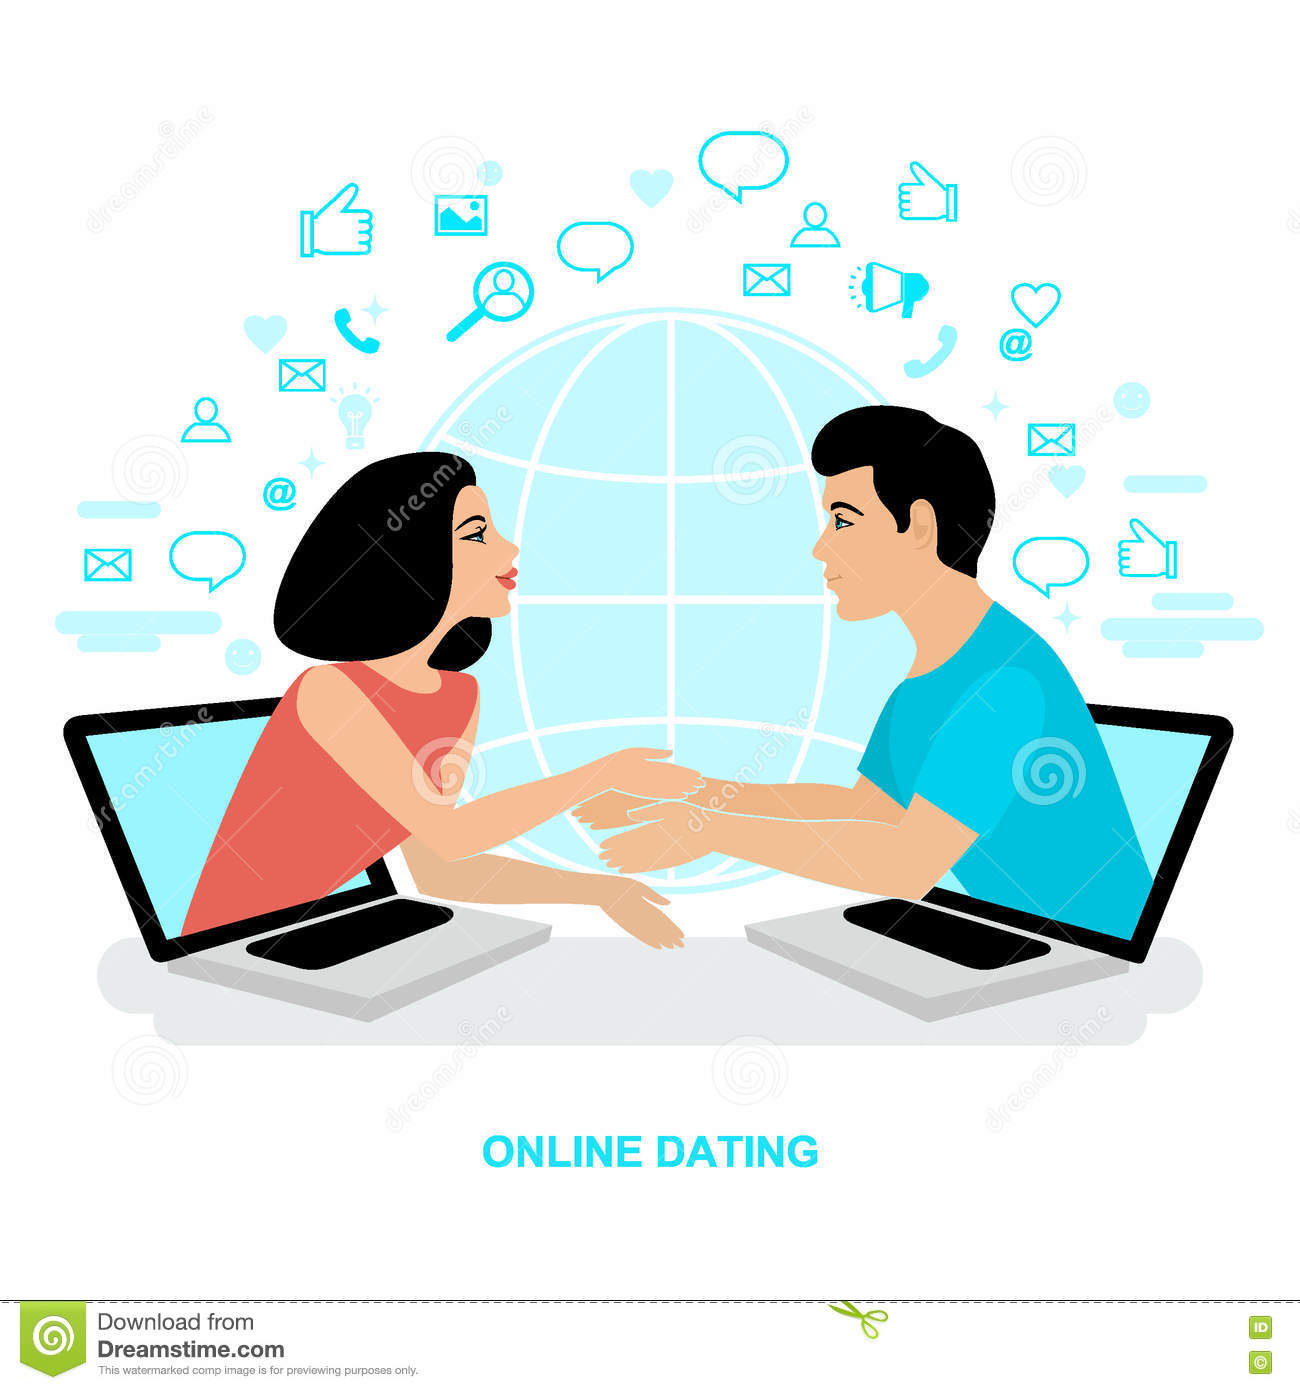 coopersville online hookup & dating Lining up plans in nunica whether you're a local, new in town, or just passing through, you'll be sure to find something on eventbrite that piques your interest.